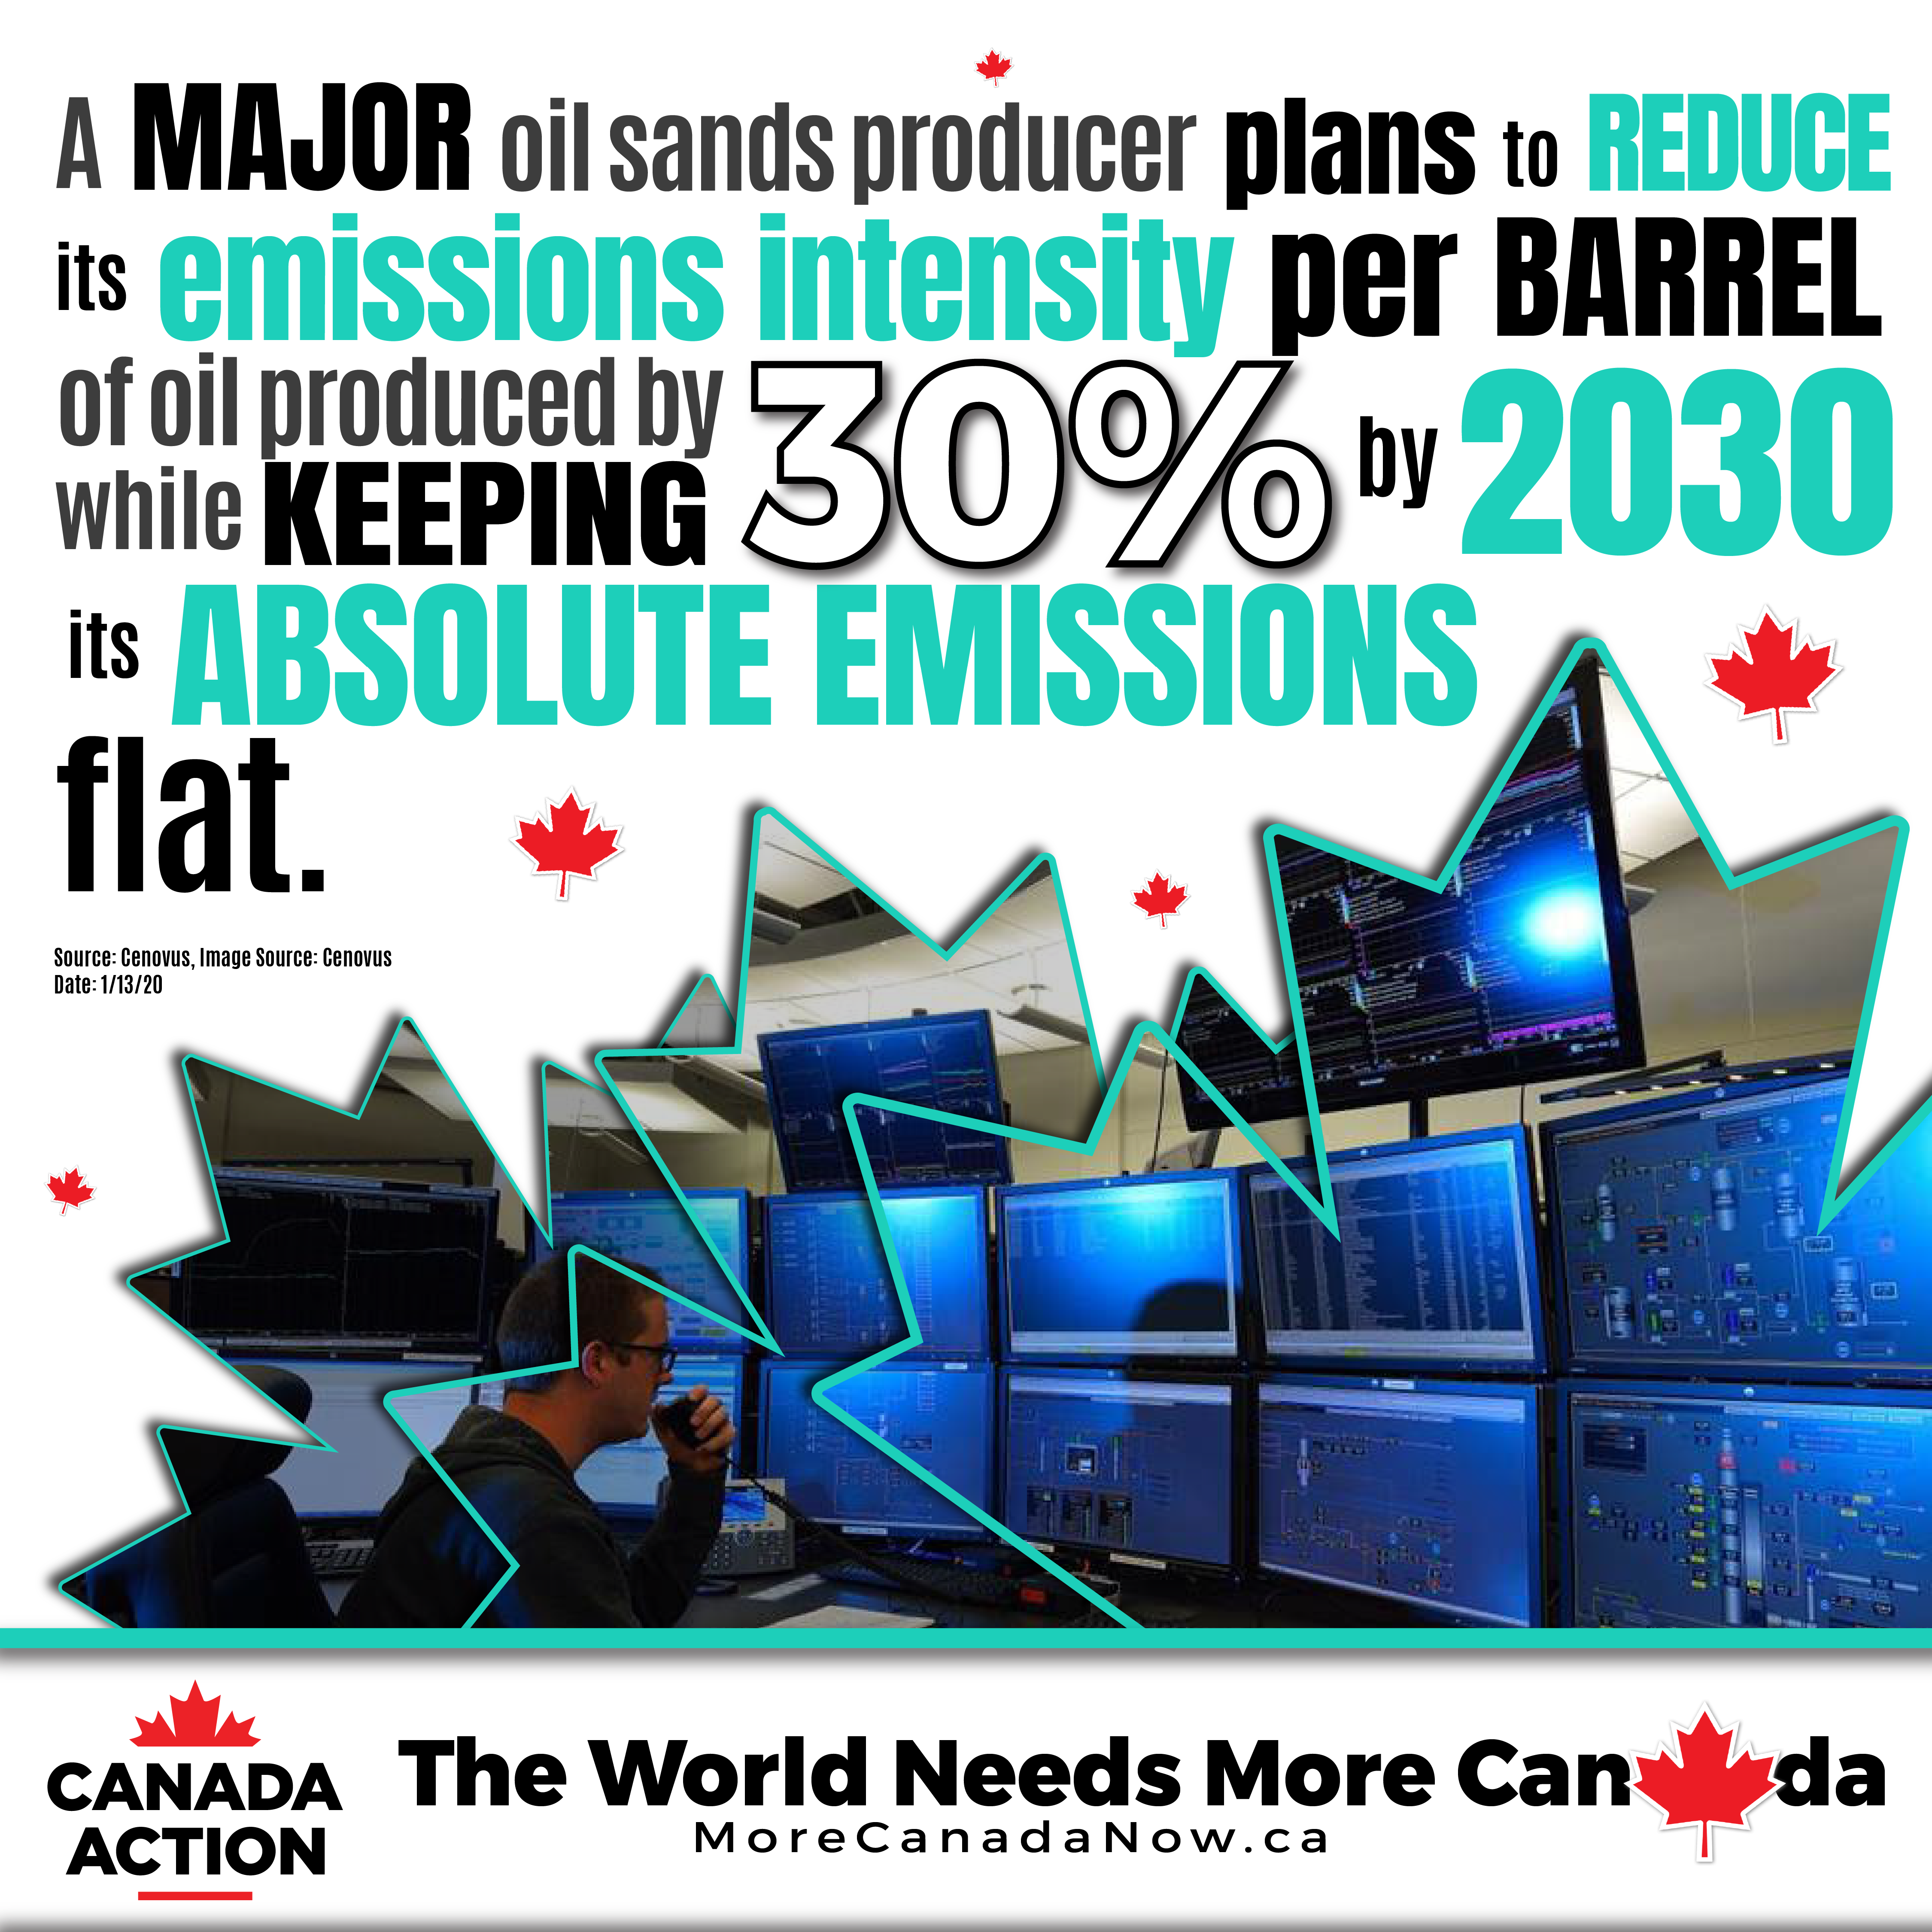 Oil sands producer plans to reduce emissions by 30% by 2030 while keeping absolute emissions flat